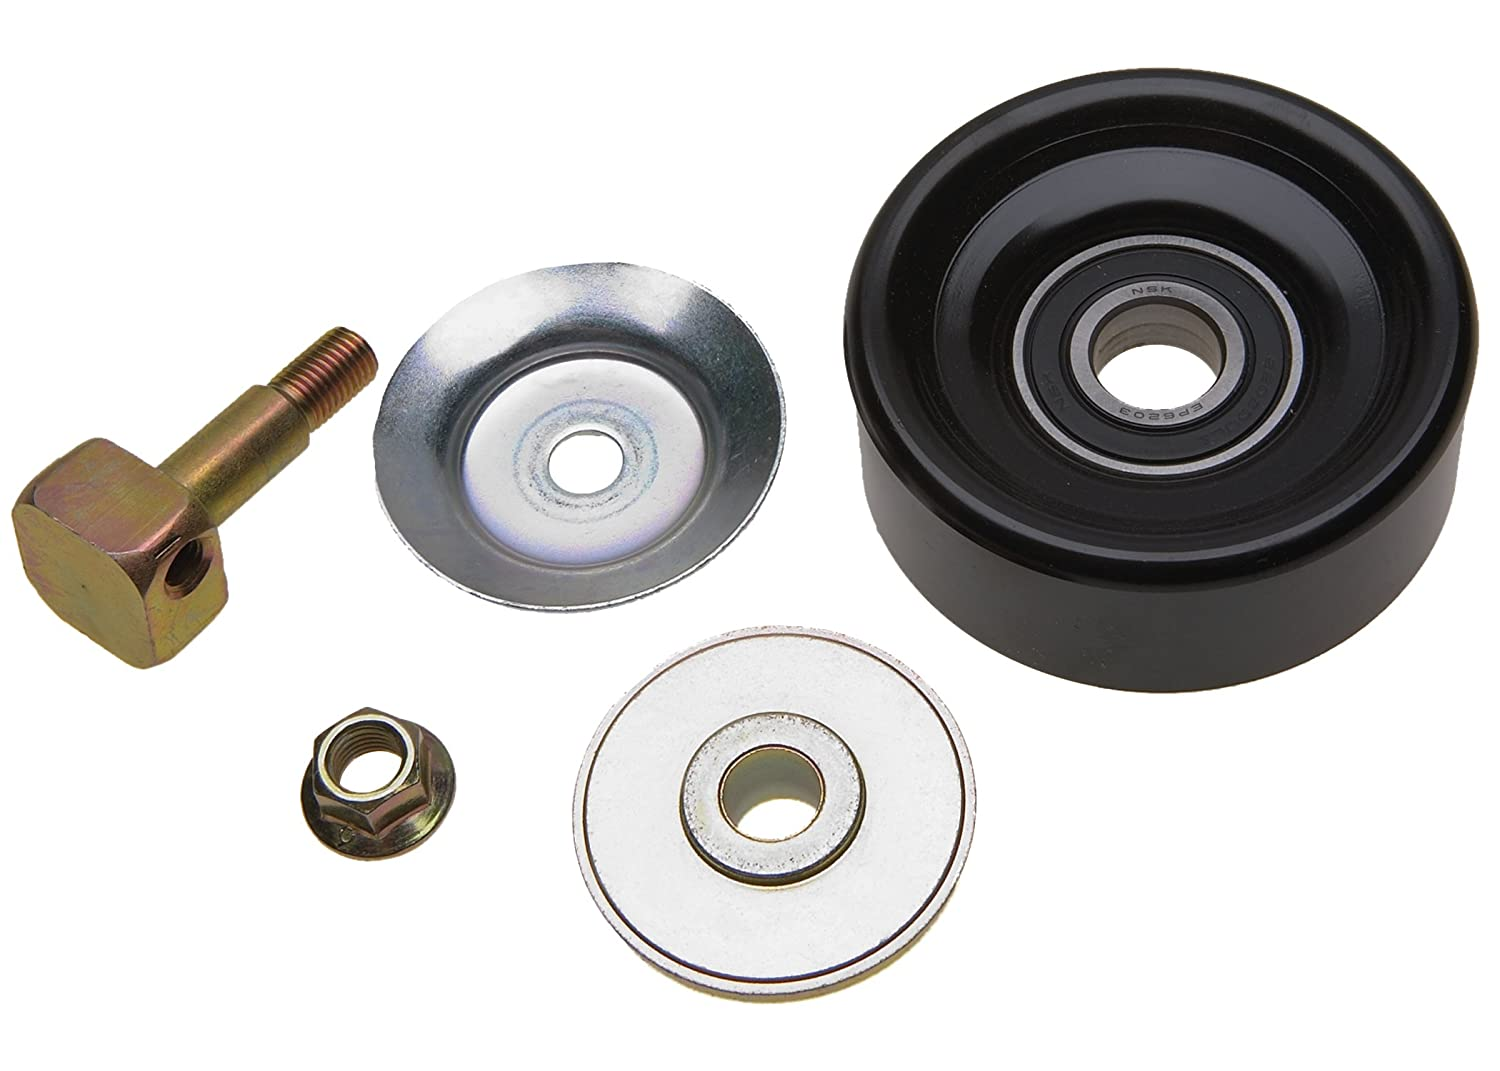 ACDelco 36142 Professional Idler Pulley with Bolt, 2 Dust Shields, and Nut 36142-ACD